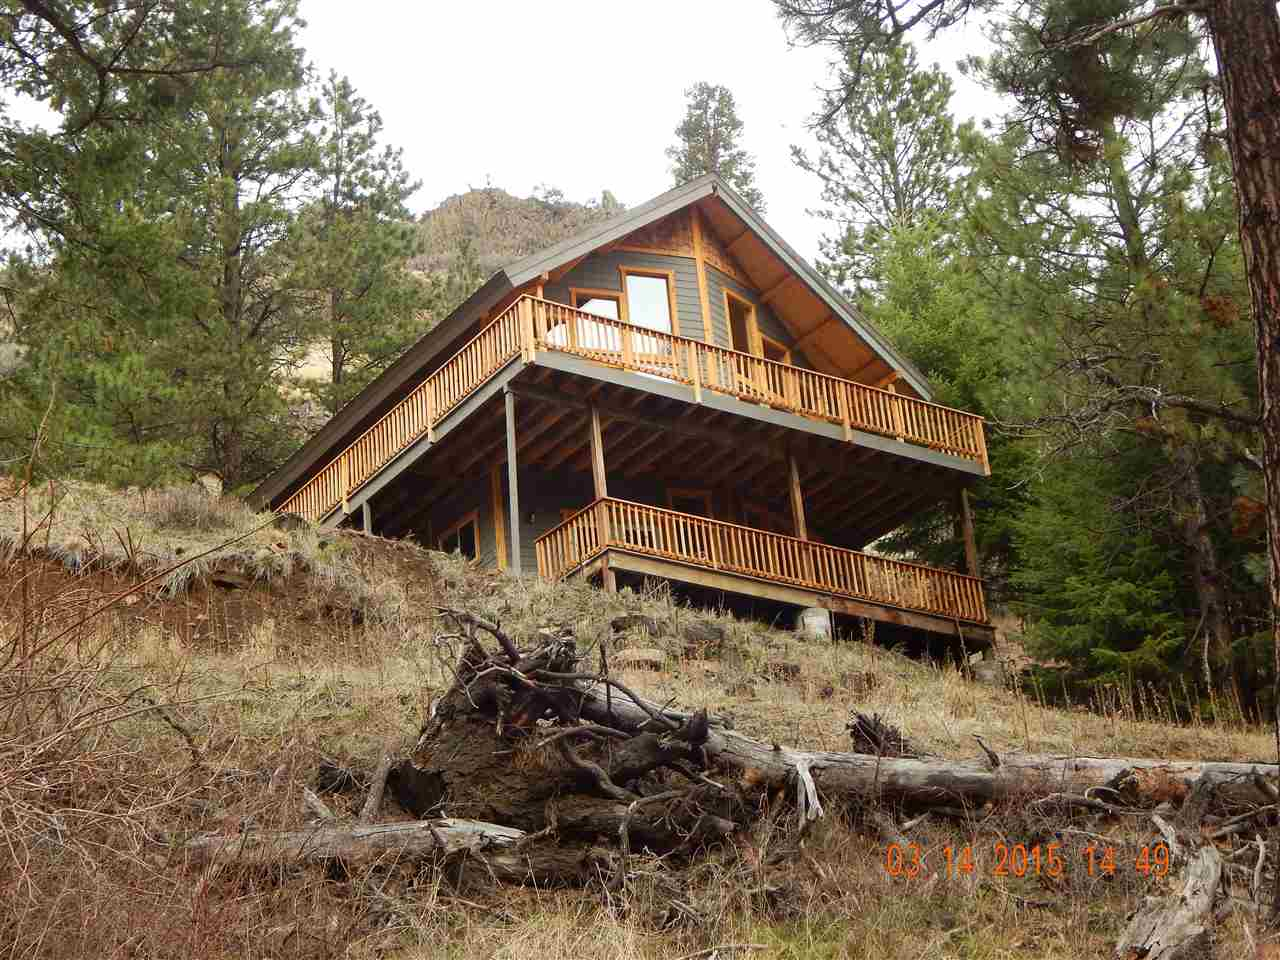 Single Family Home for Sale at 764 Seven Devils Road 764 Seven Devils Road Riggins, Idaho 83549